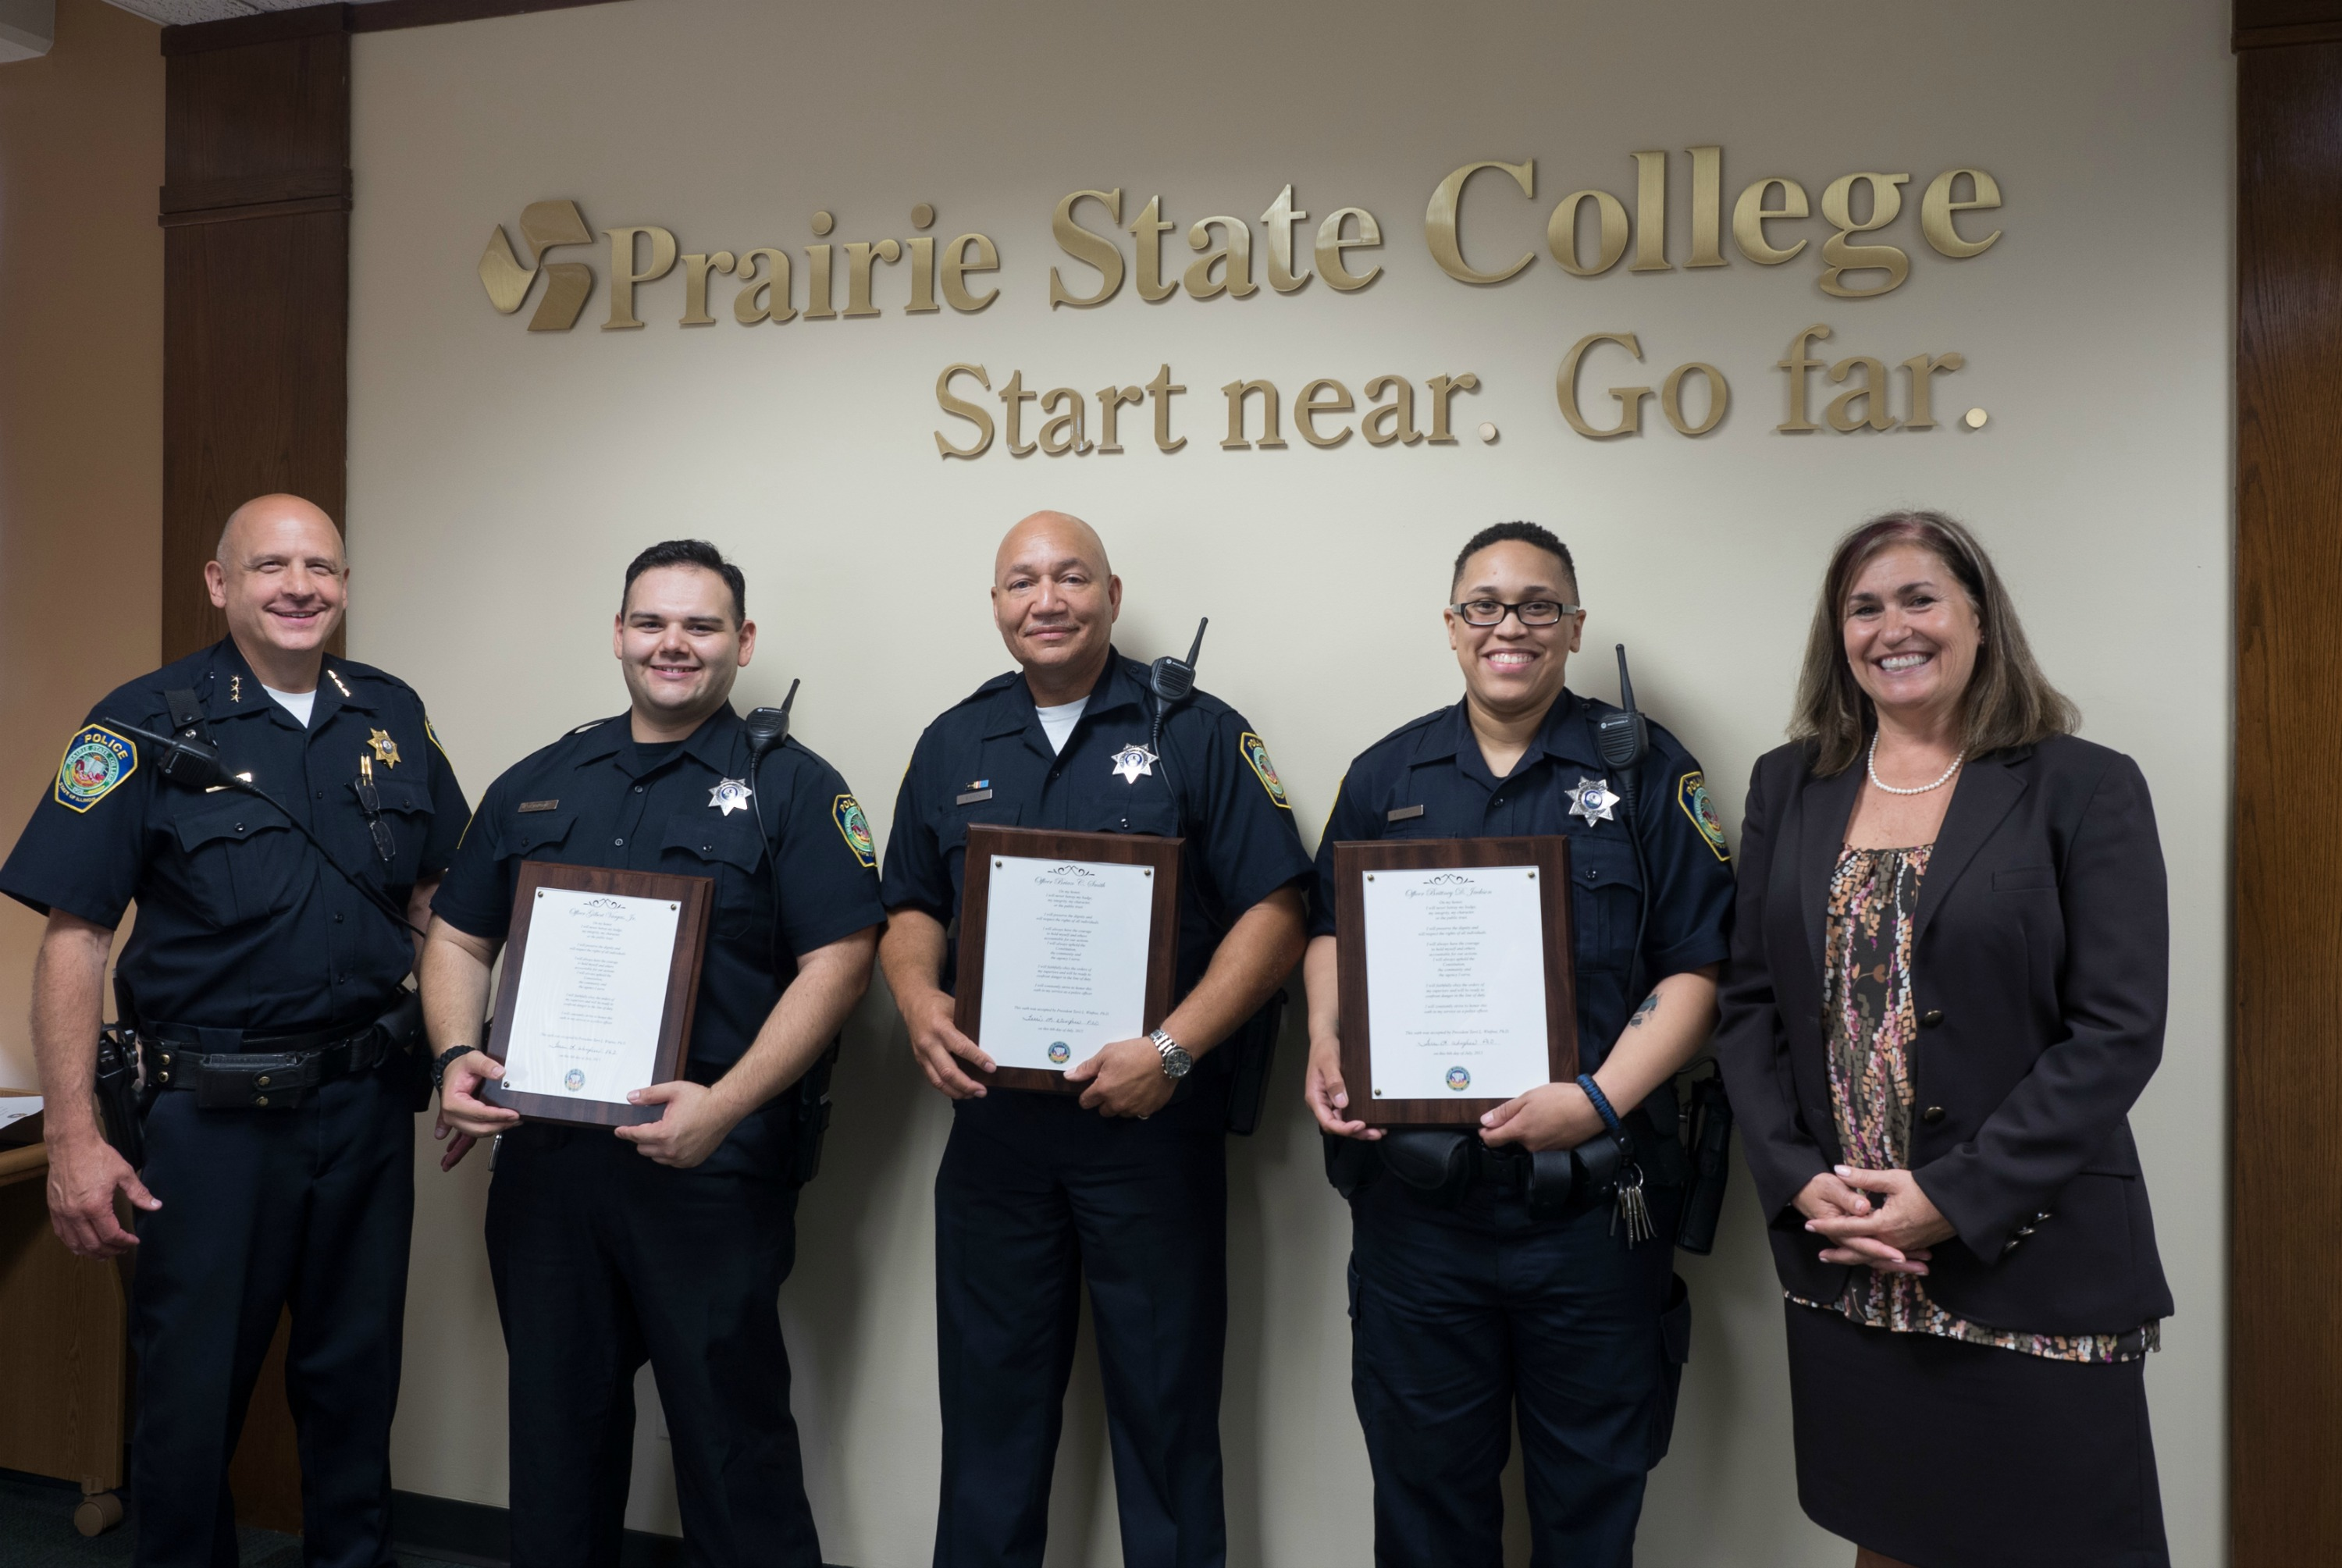 Prairie State College >> Three New Officers Join Psc Police Department